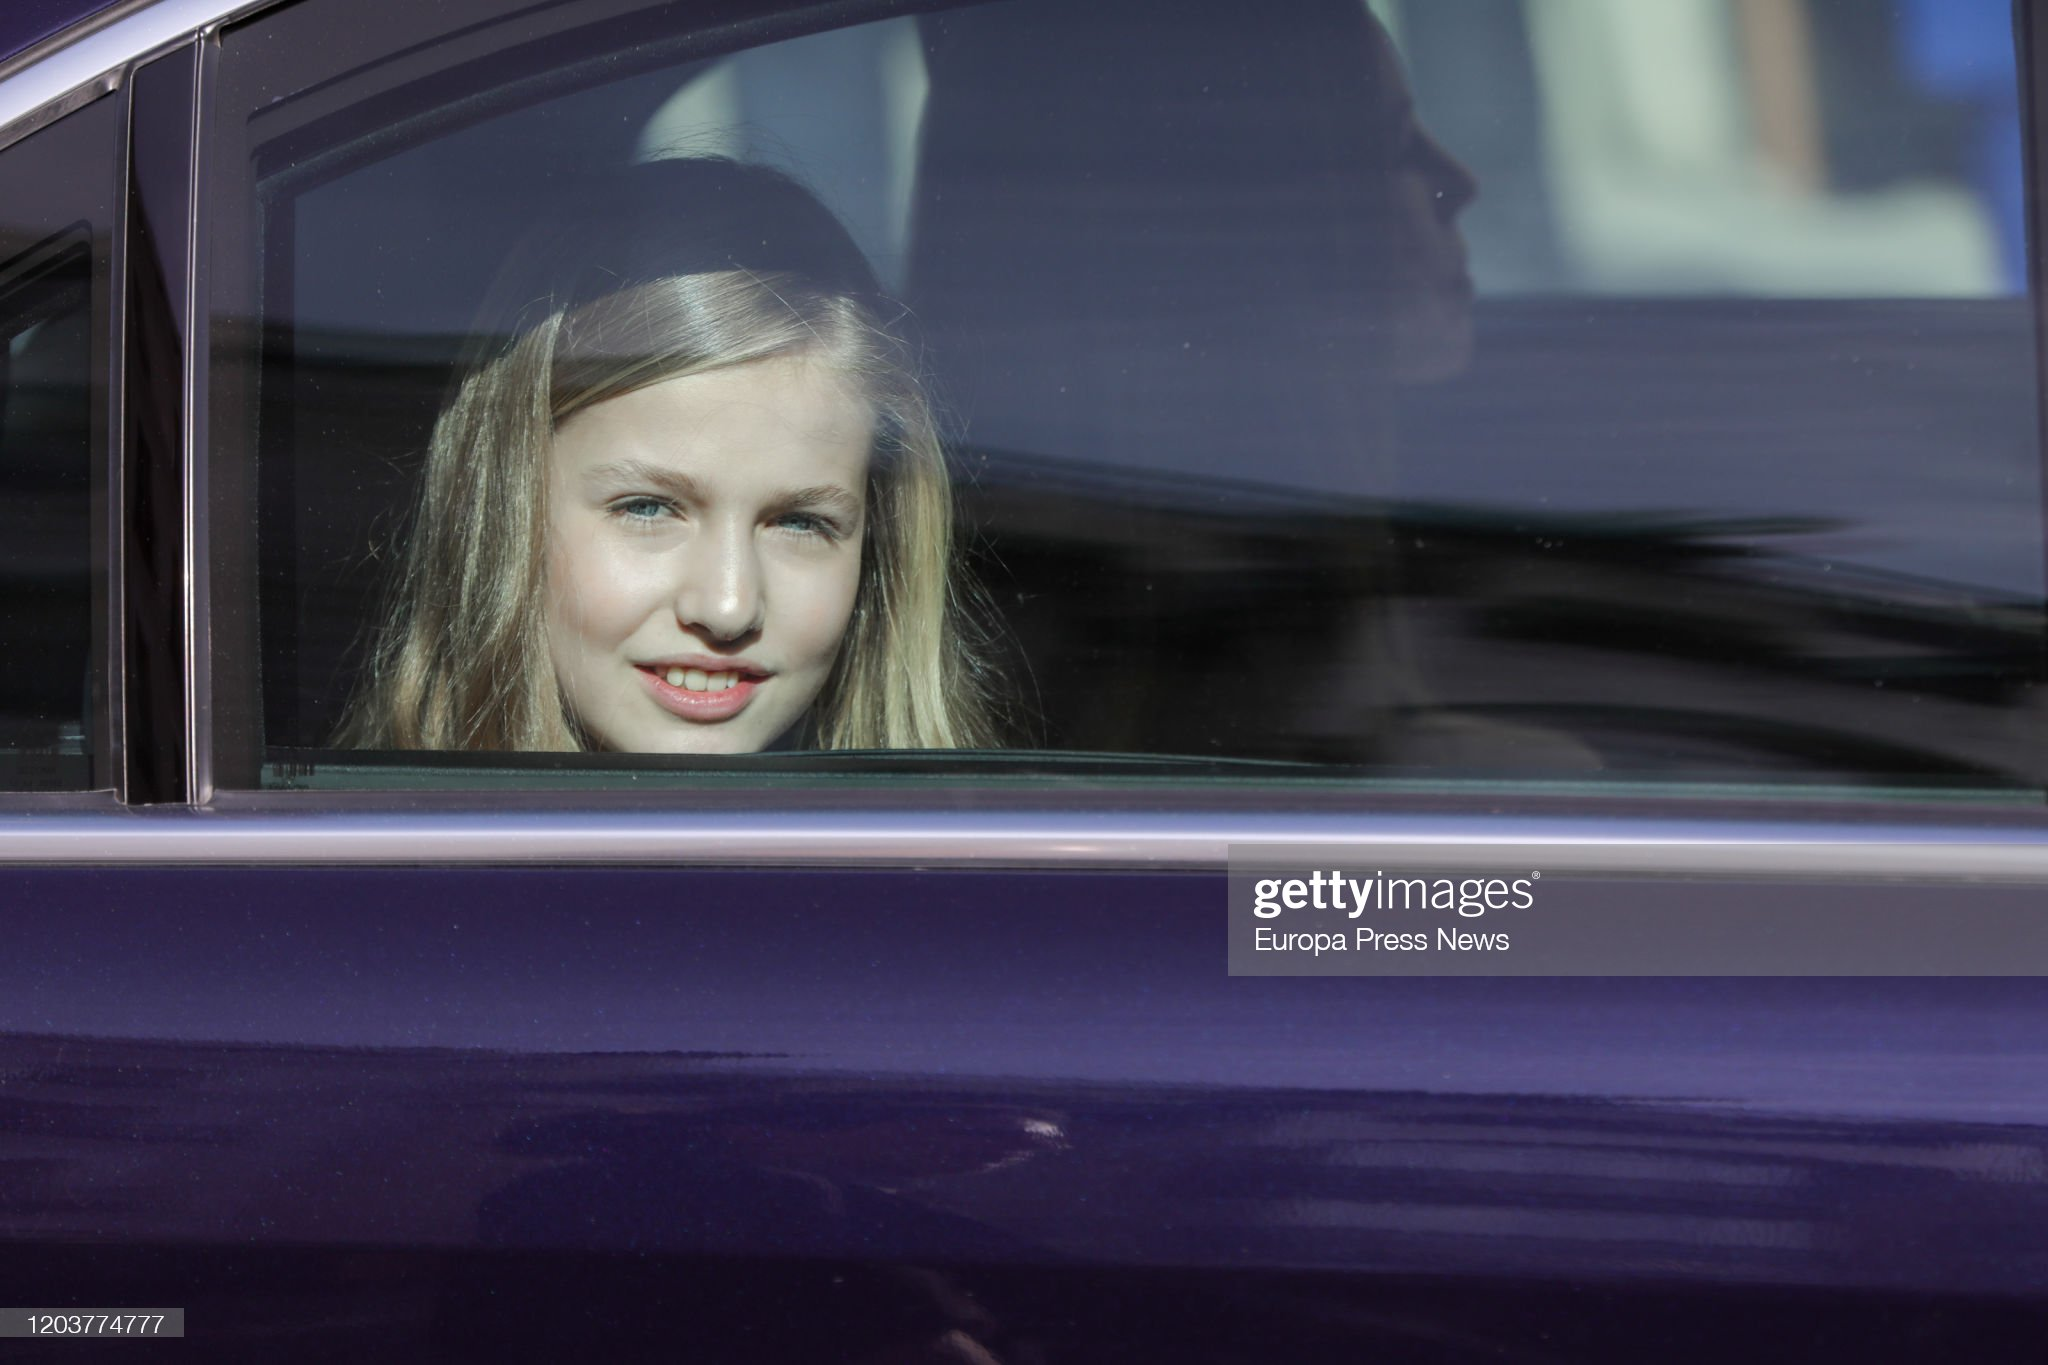 https://media.gettyimages.com/photos/princess-leonor-in-a-car-after-the-solemn-opening-of-the-14th-at-the-picture-id1203774777?s=2048x2048